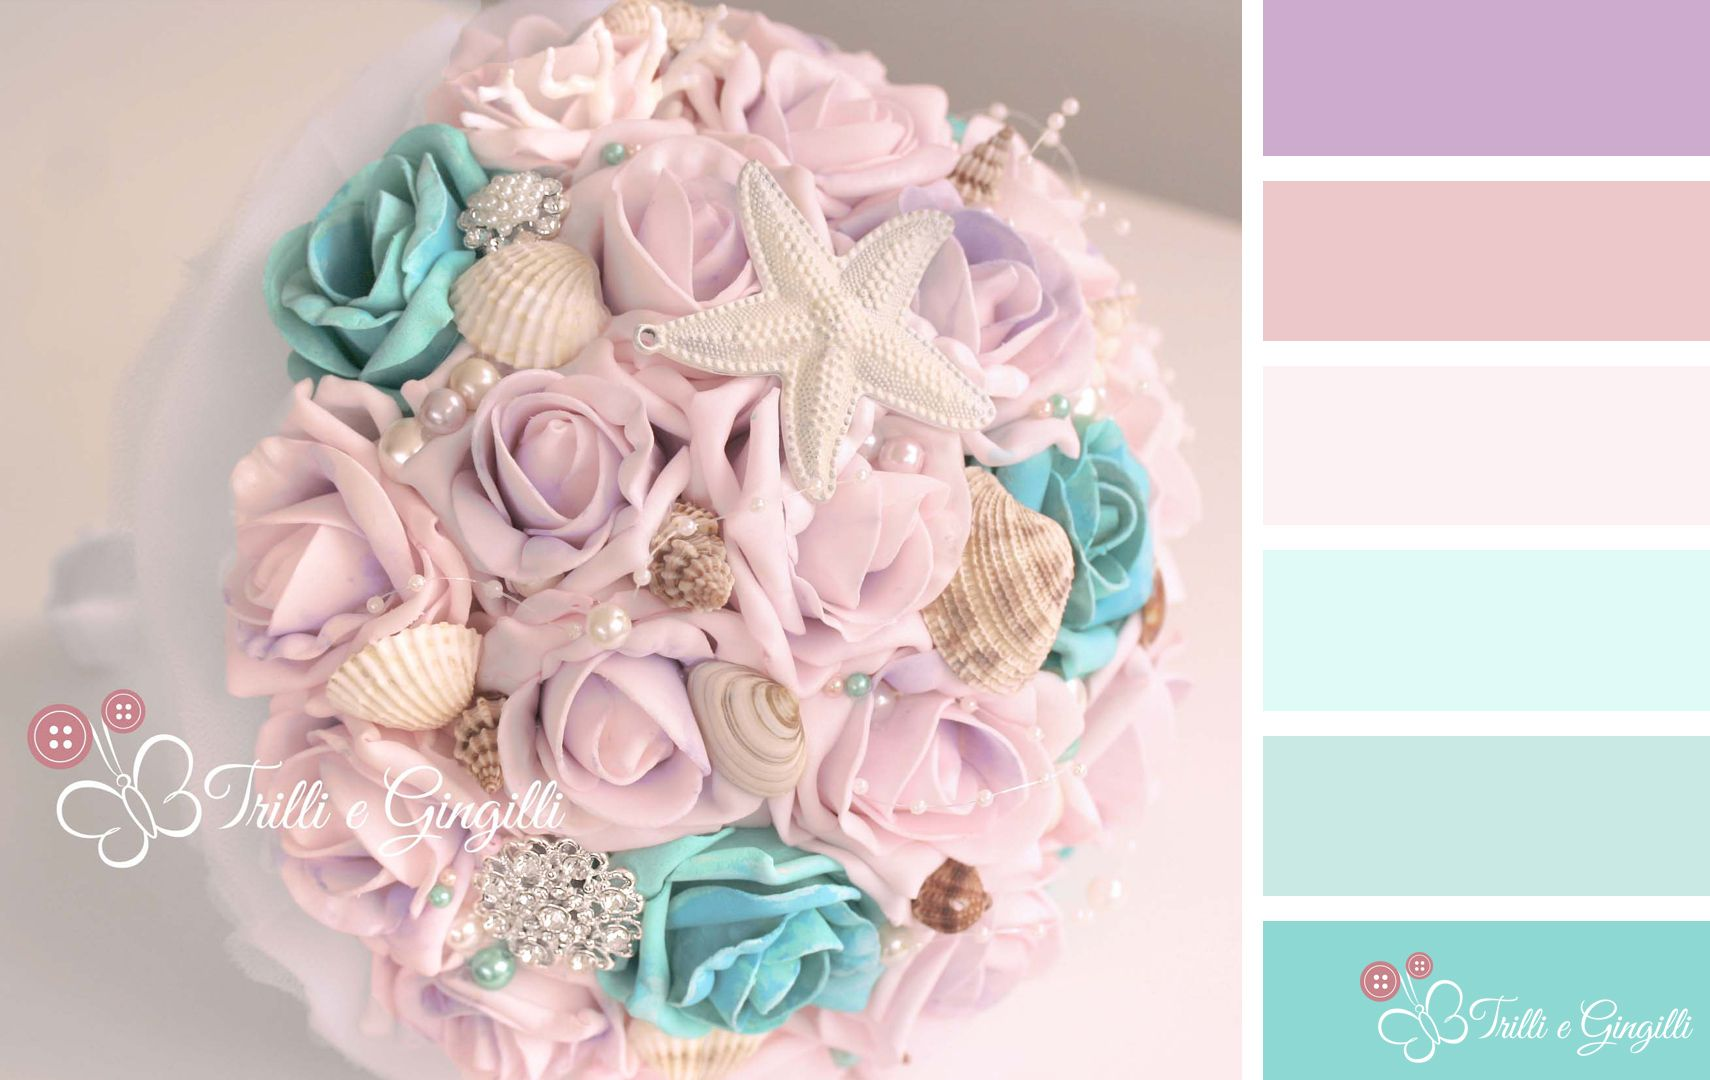 Palette di colori per matrimonio tiffany e lilla. Wedding color palette tiffany and lillà. #bouquet